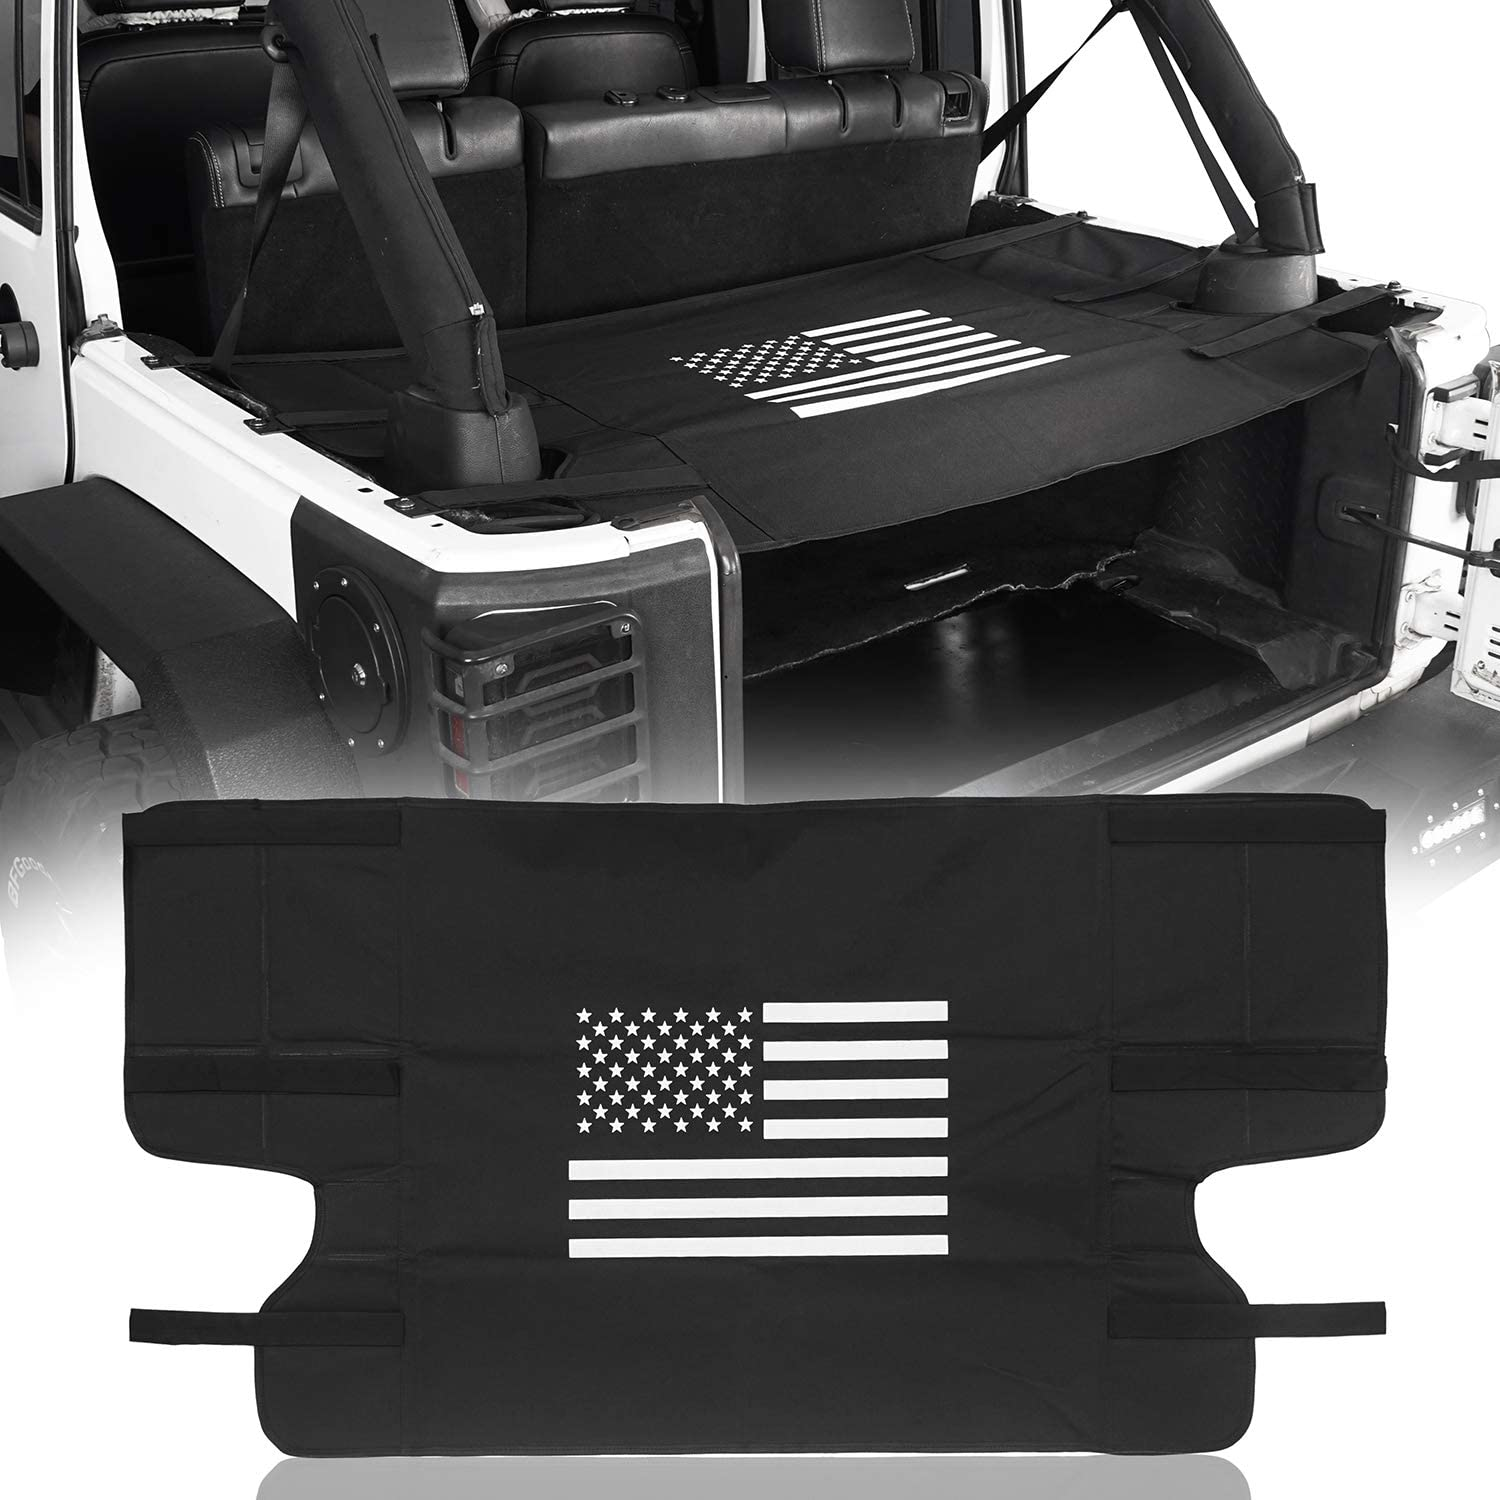 Trunk Cargo Cover w/US Flag Logo for TOP ON/TOPLESS Compatible with Jeep Wrangler JK 07-18 4-Door